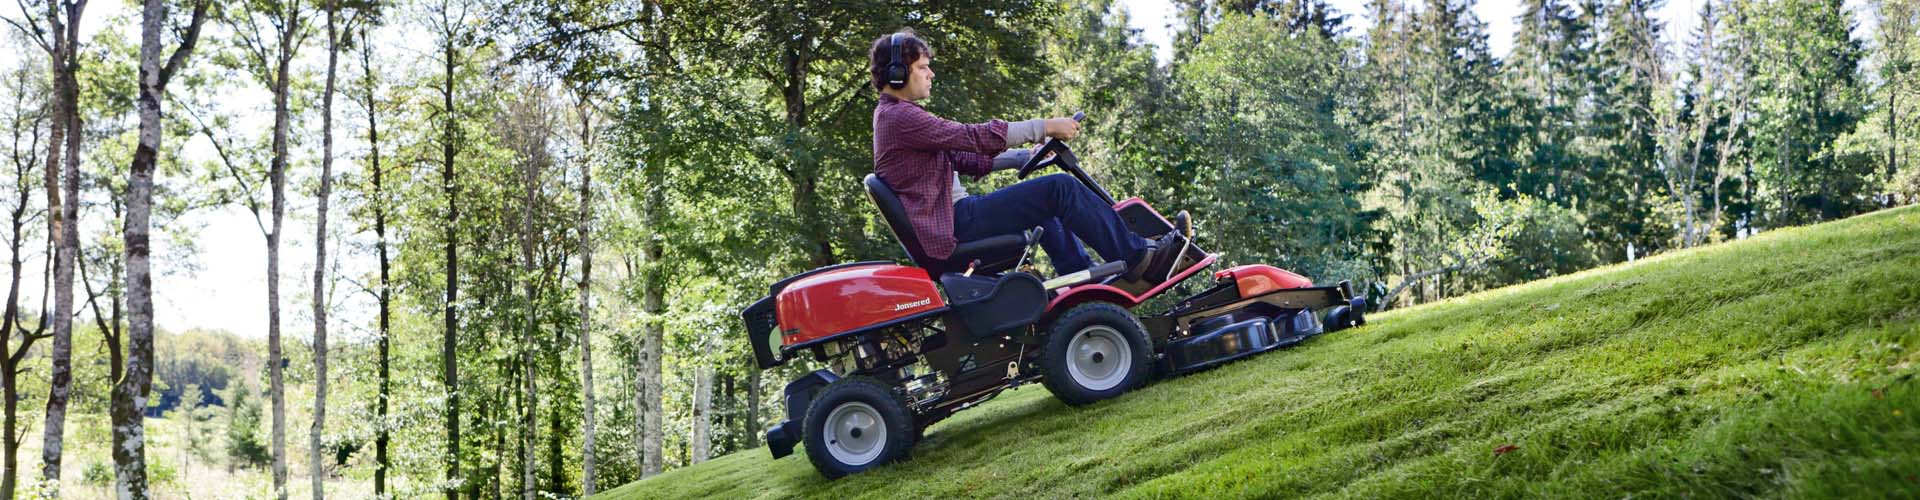 Jonsered Ride On Mowers